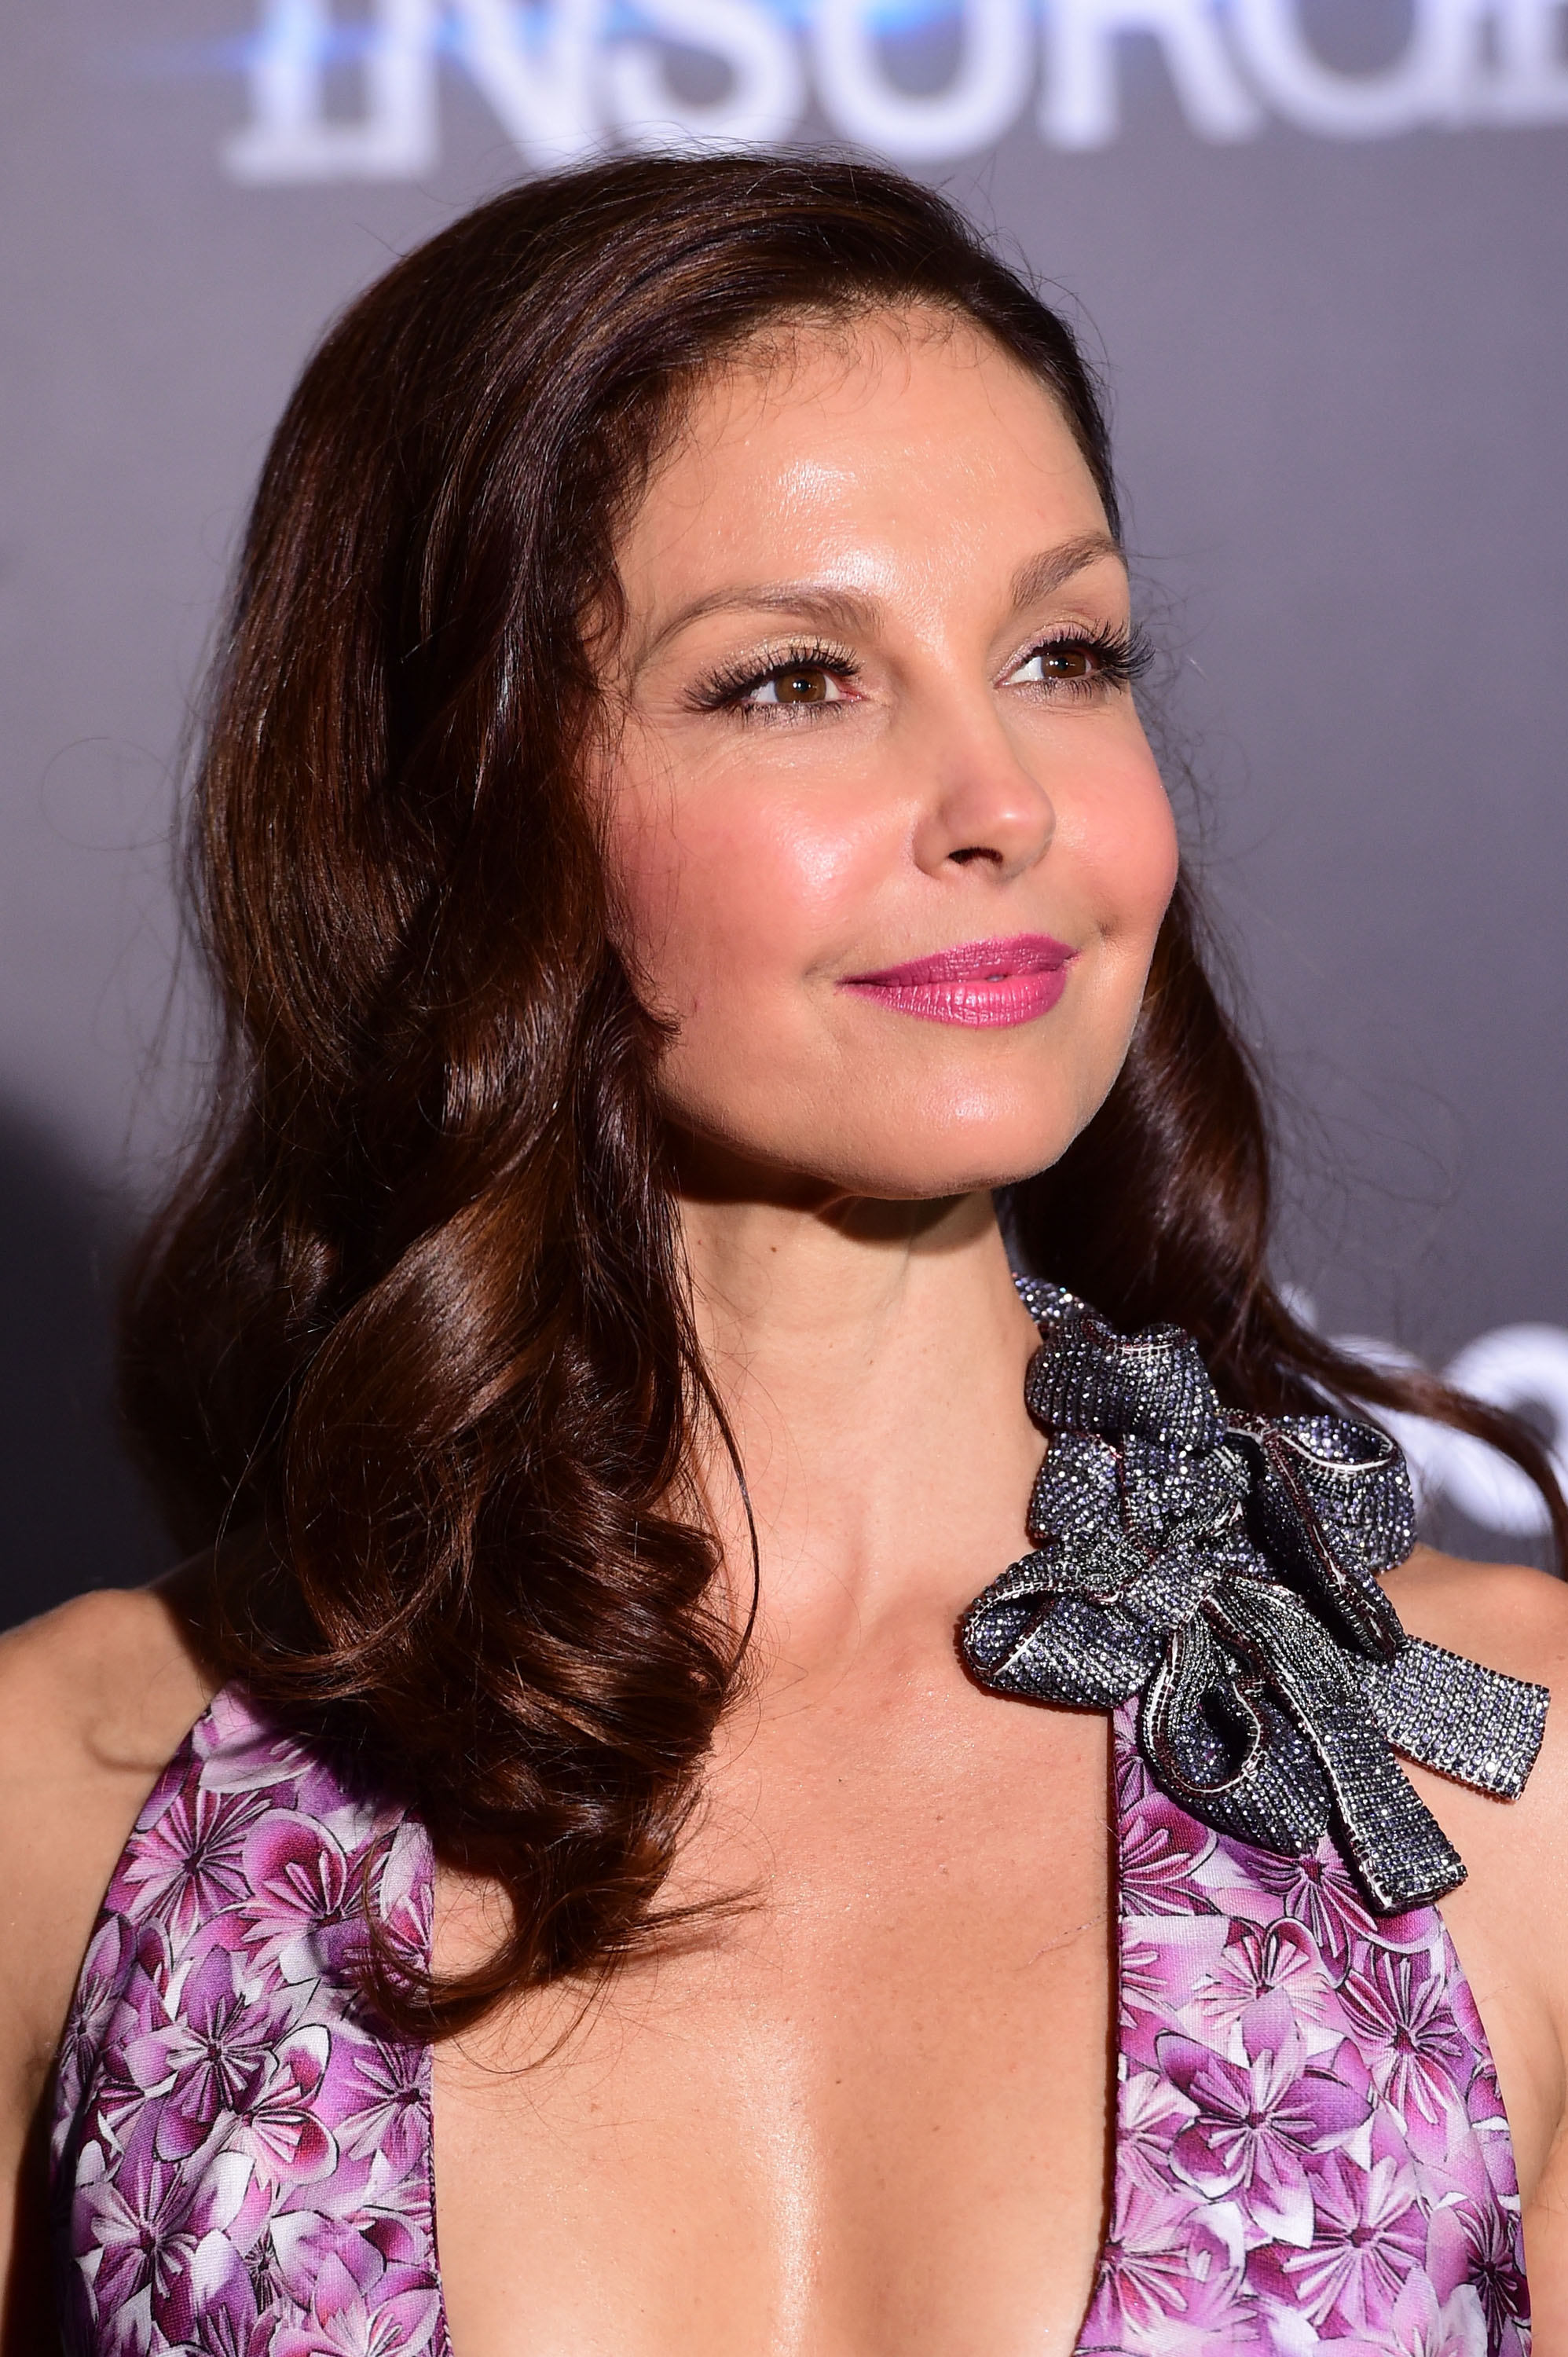 Actress Ashley Judd attends the  The Divergent Series: Insurgent  premiere at the Ziegfeld Theater on March 16, 2015 in New York City.  (Tyler Boye--Getty Images)